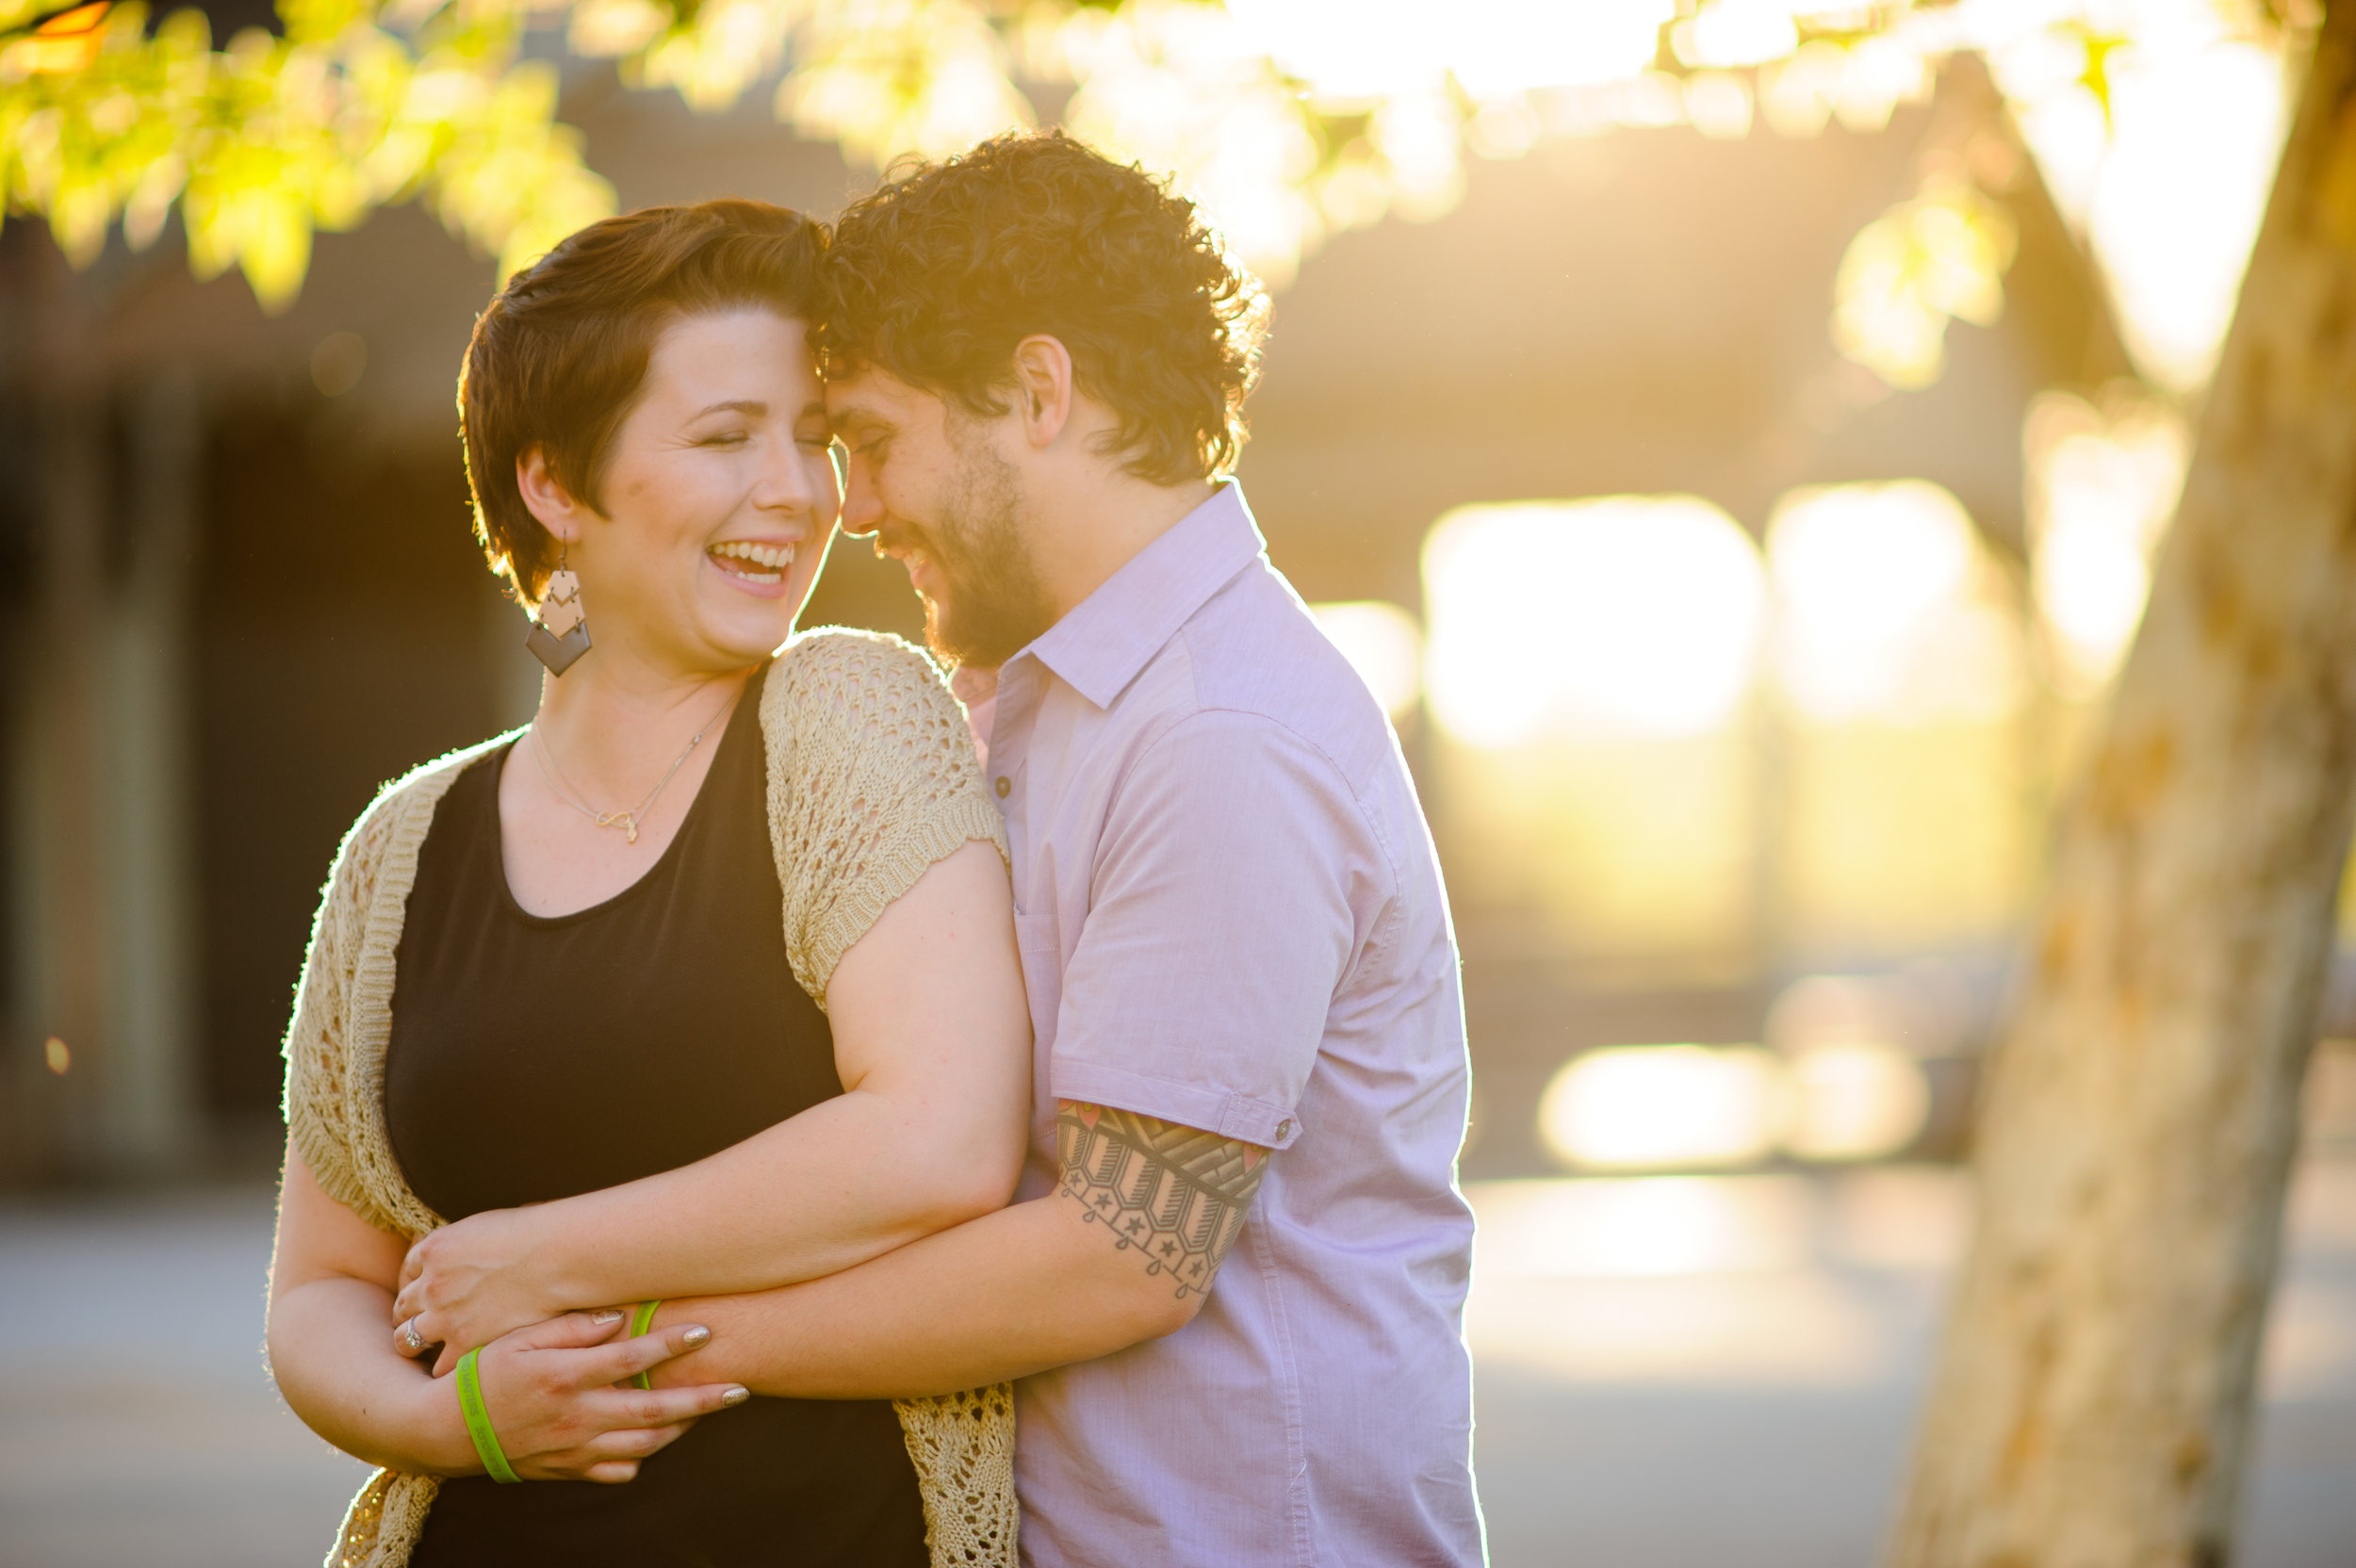 chloe-evan-007-old-sacramento-engagement-session-wedding-photographer-katherine-nicole-photography.JPG